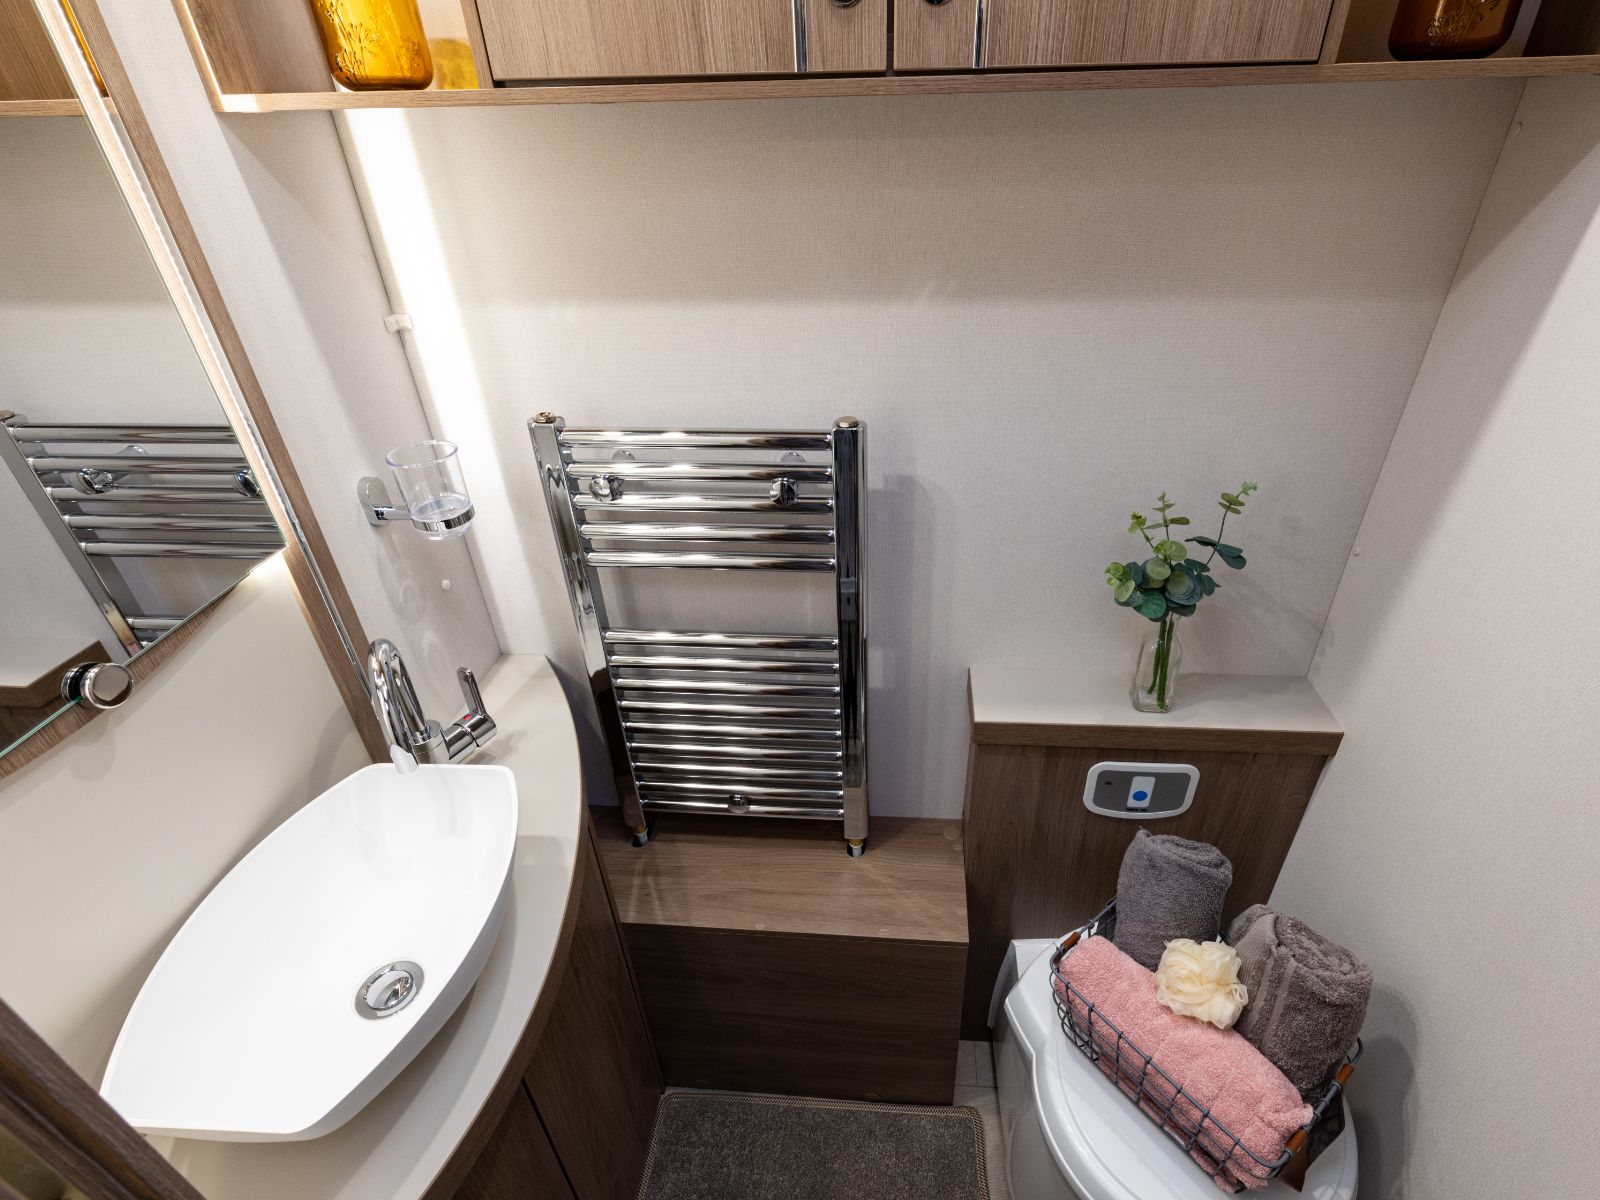 Toilet with towels and bathroom sink '